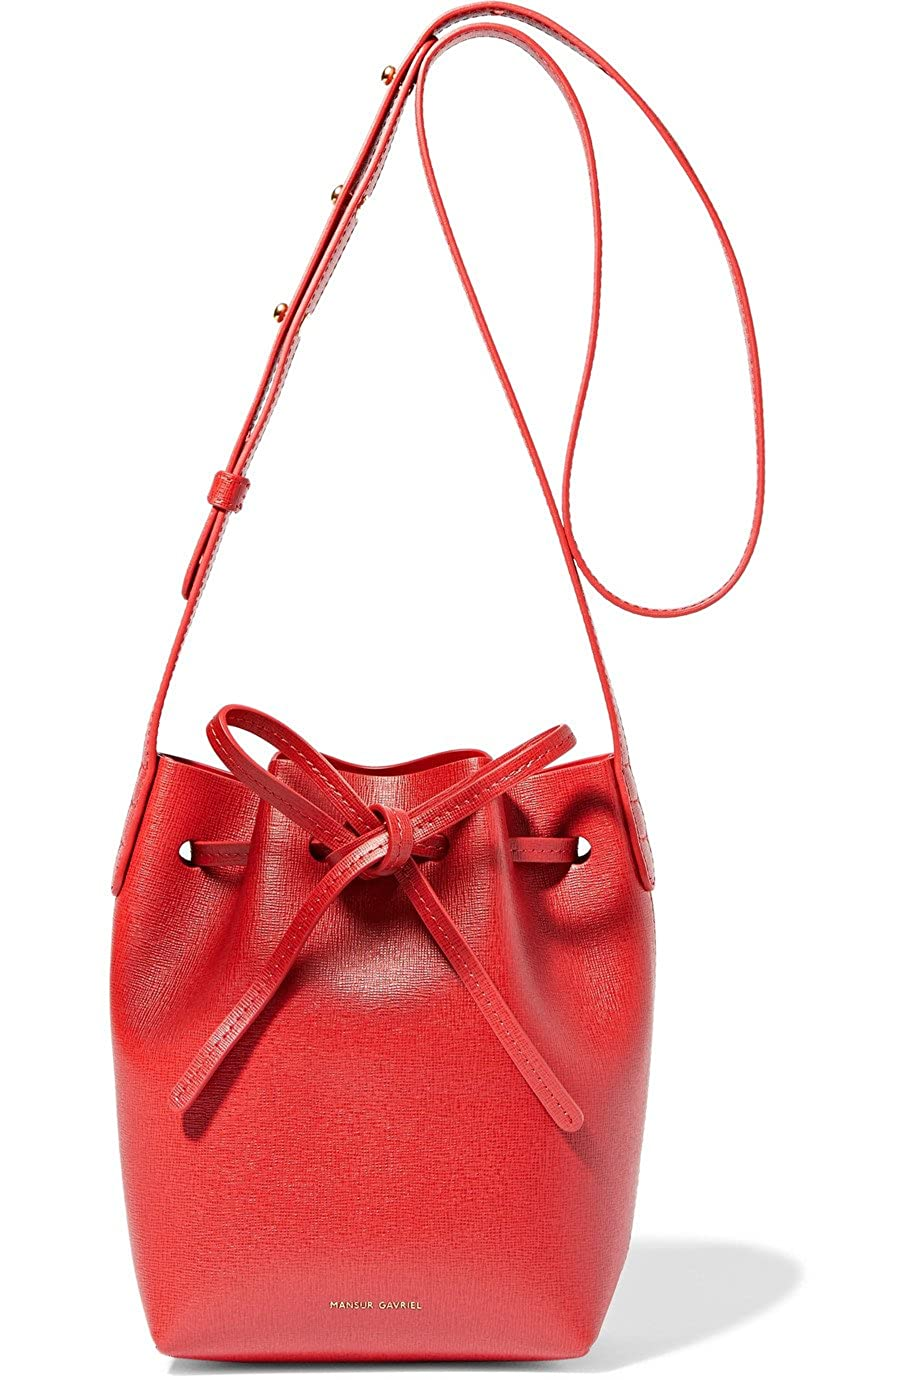 (マンサーガブリエル) Mansur Gavriel Women`s Mini Mini leather bucket bag Red leather Calf レディースミニレザーバケットバッグレッドレザーカーフ(並行輸入品) B07CR2ZM3R Red textured-leather (Calf) One Size